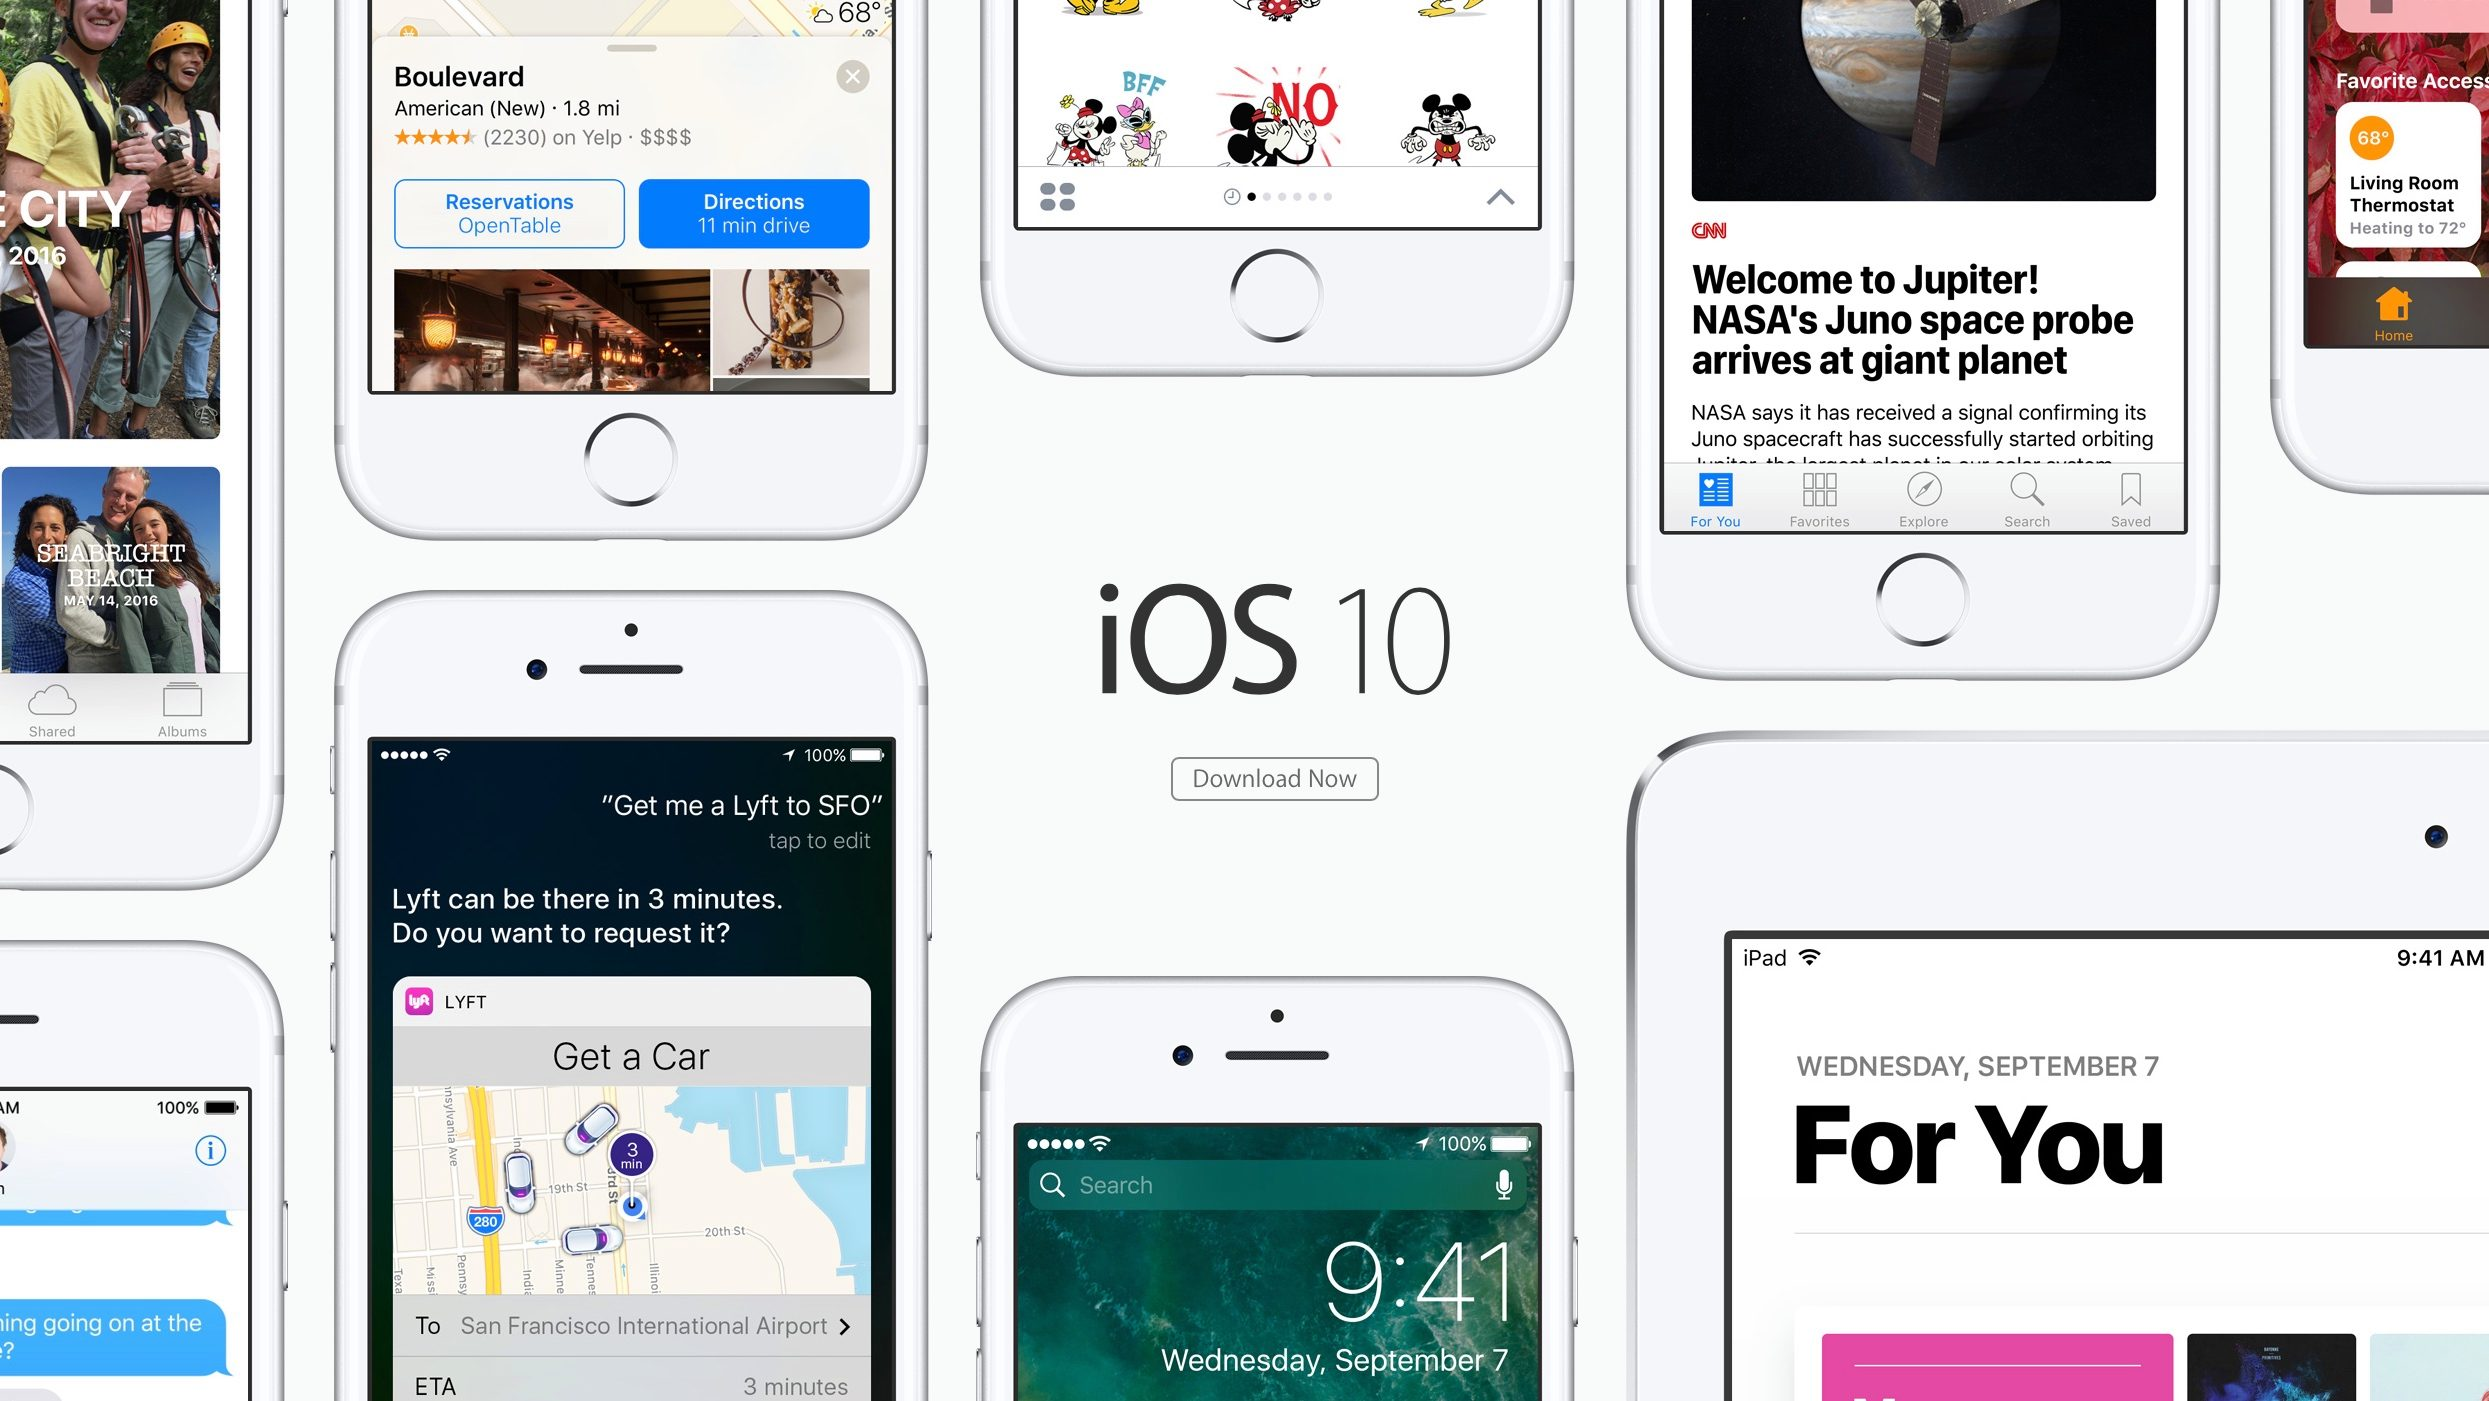 "<span href=""https://9to5mac.com/2016/09/13/apple-releases-ios-10-for-iphone-ipad-and-ipod-touch-to-the-public/"">Apple lanza iOS 10 para iPhone, iPad y iPod touch para el público</a>"